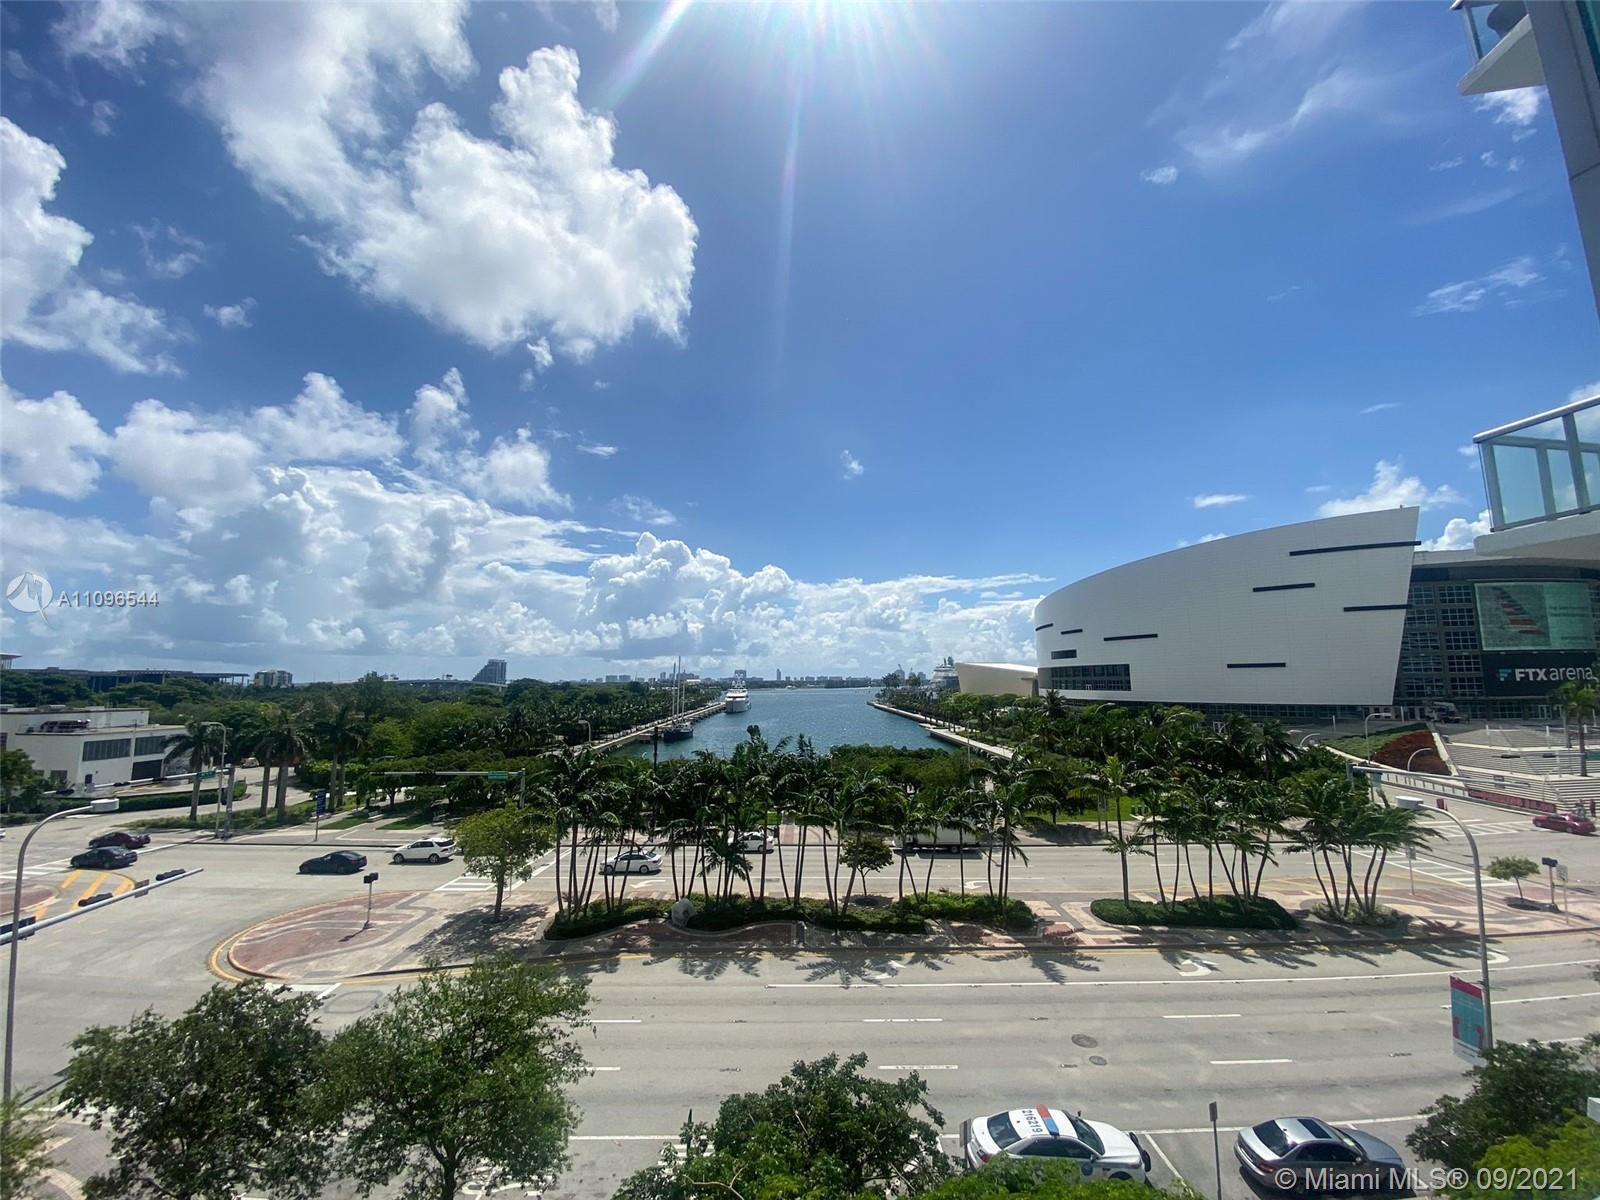 SPECTACULAR VIEWS 1 BED + DEN & 2 BATH CONDO IN DOWNTOWN MIAMI. UNFURNISHED W/ STAINLESS STEEL APPLI